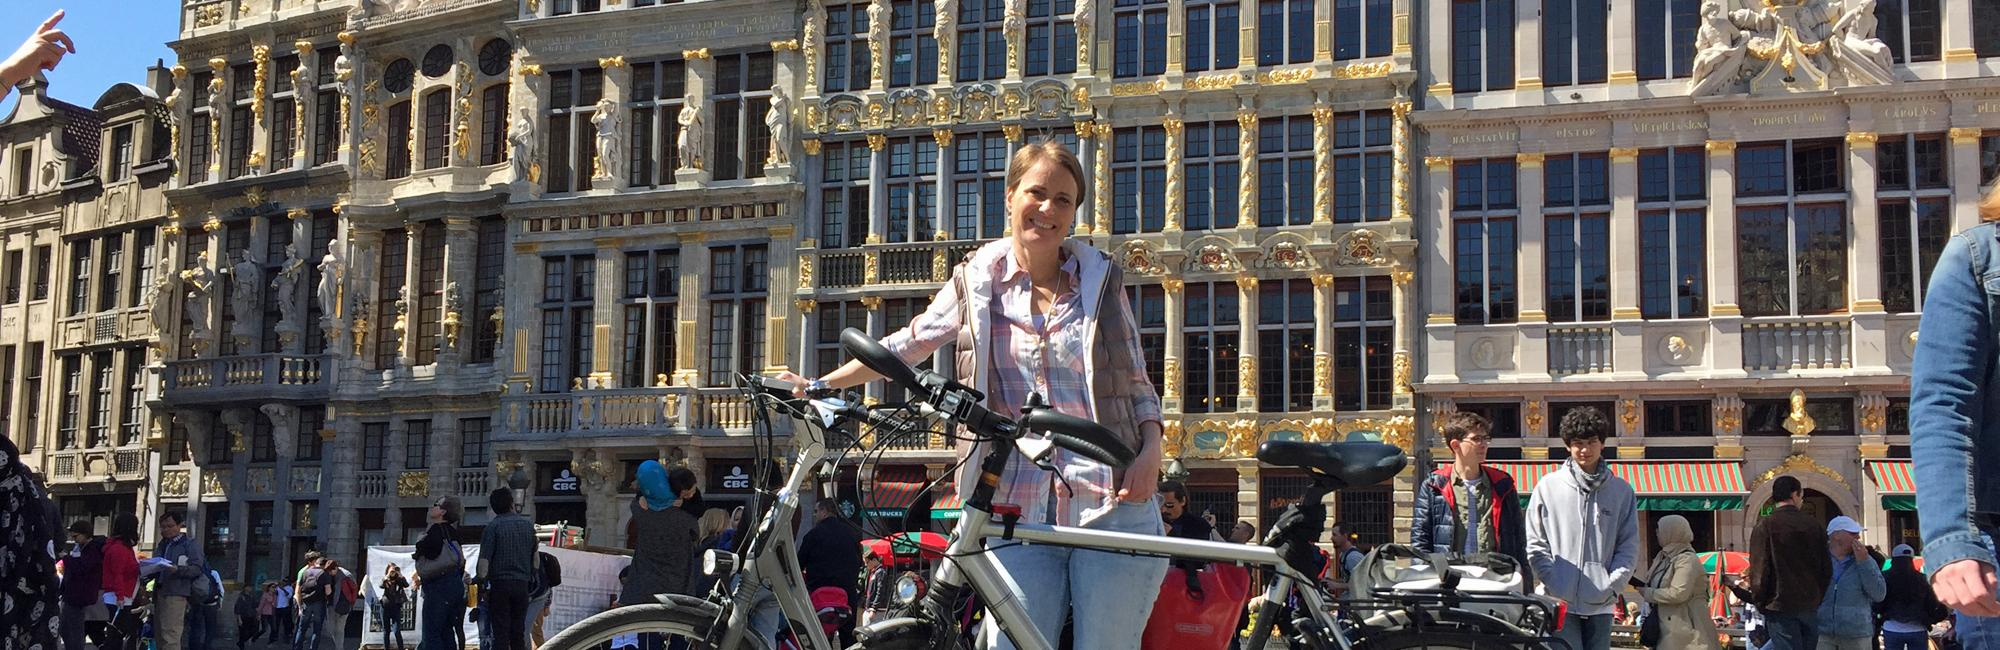 Dutch Bike Tours Cycling holiday Amsterdam - Brussels